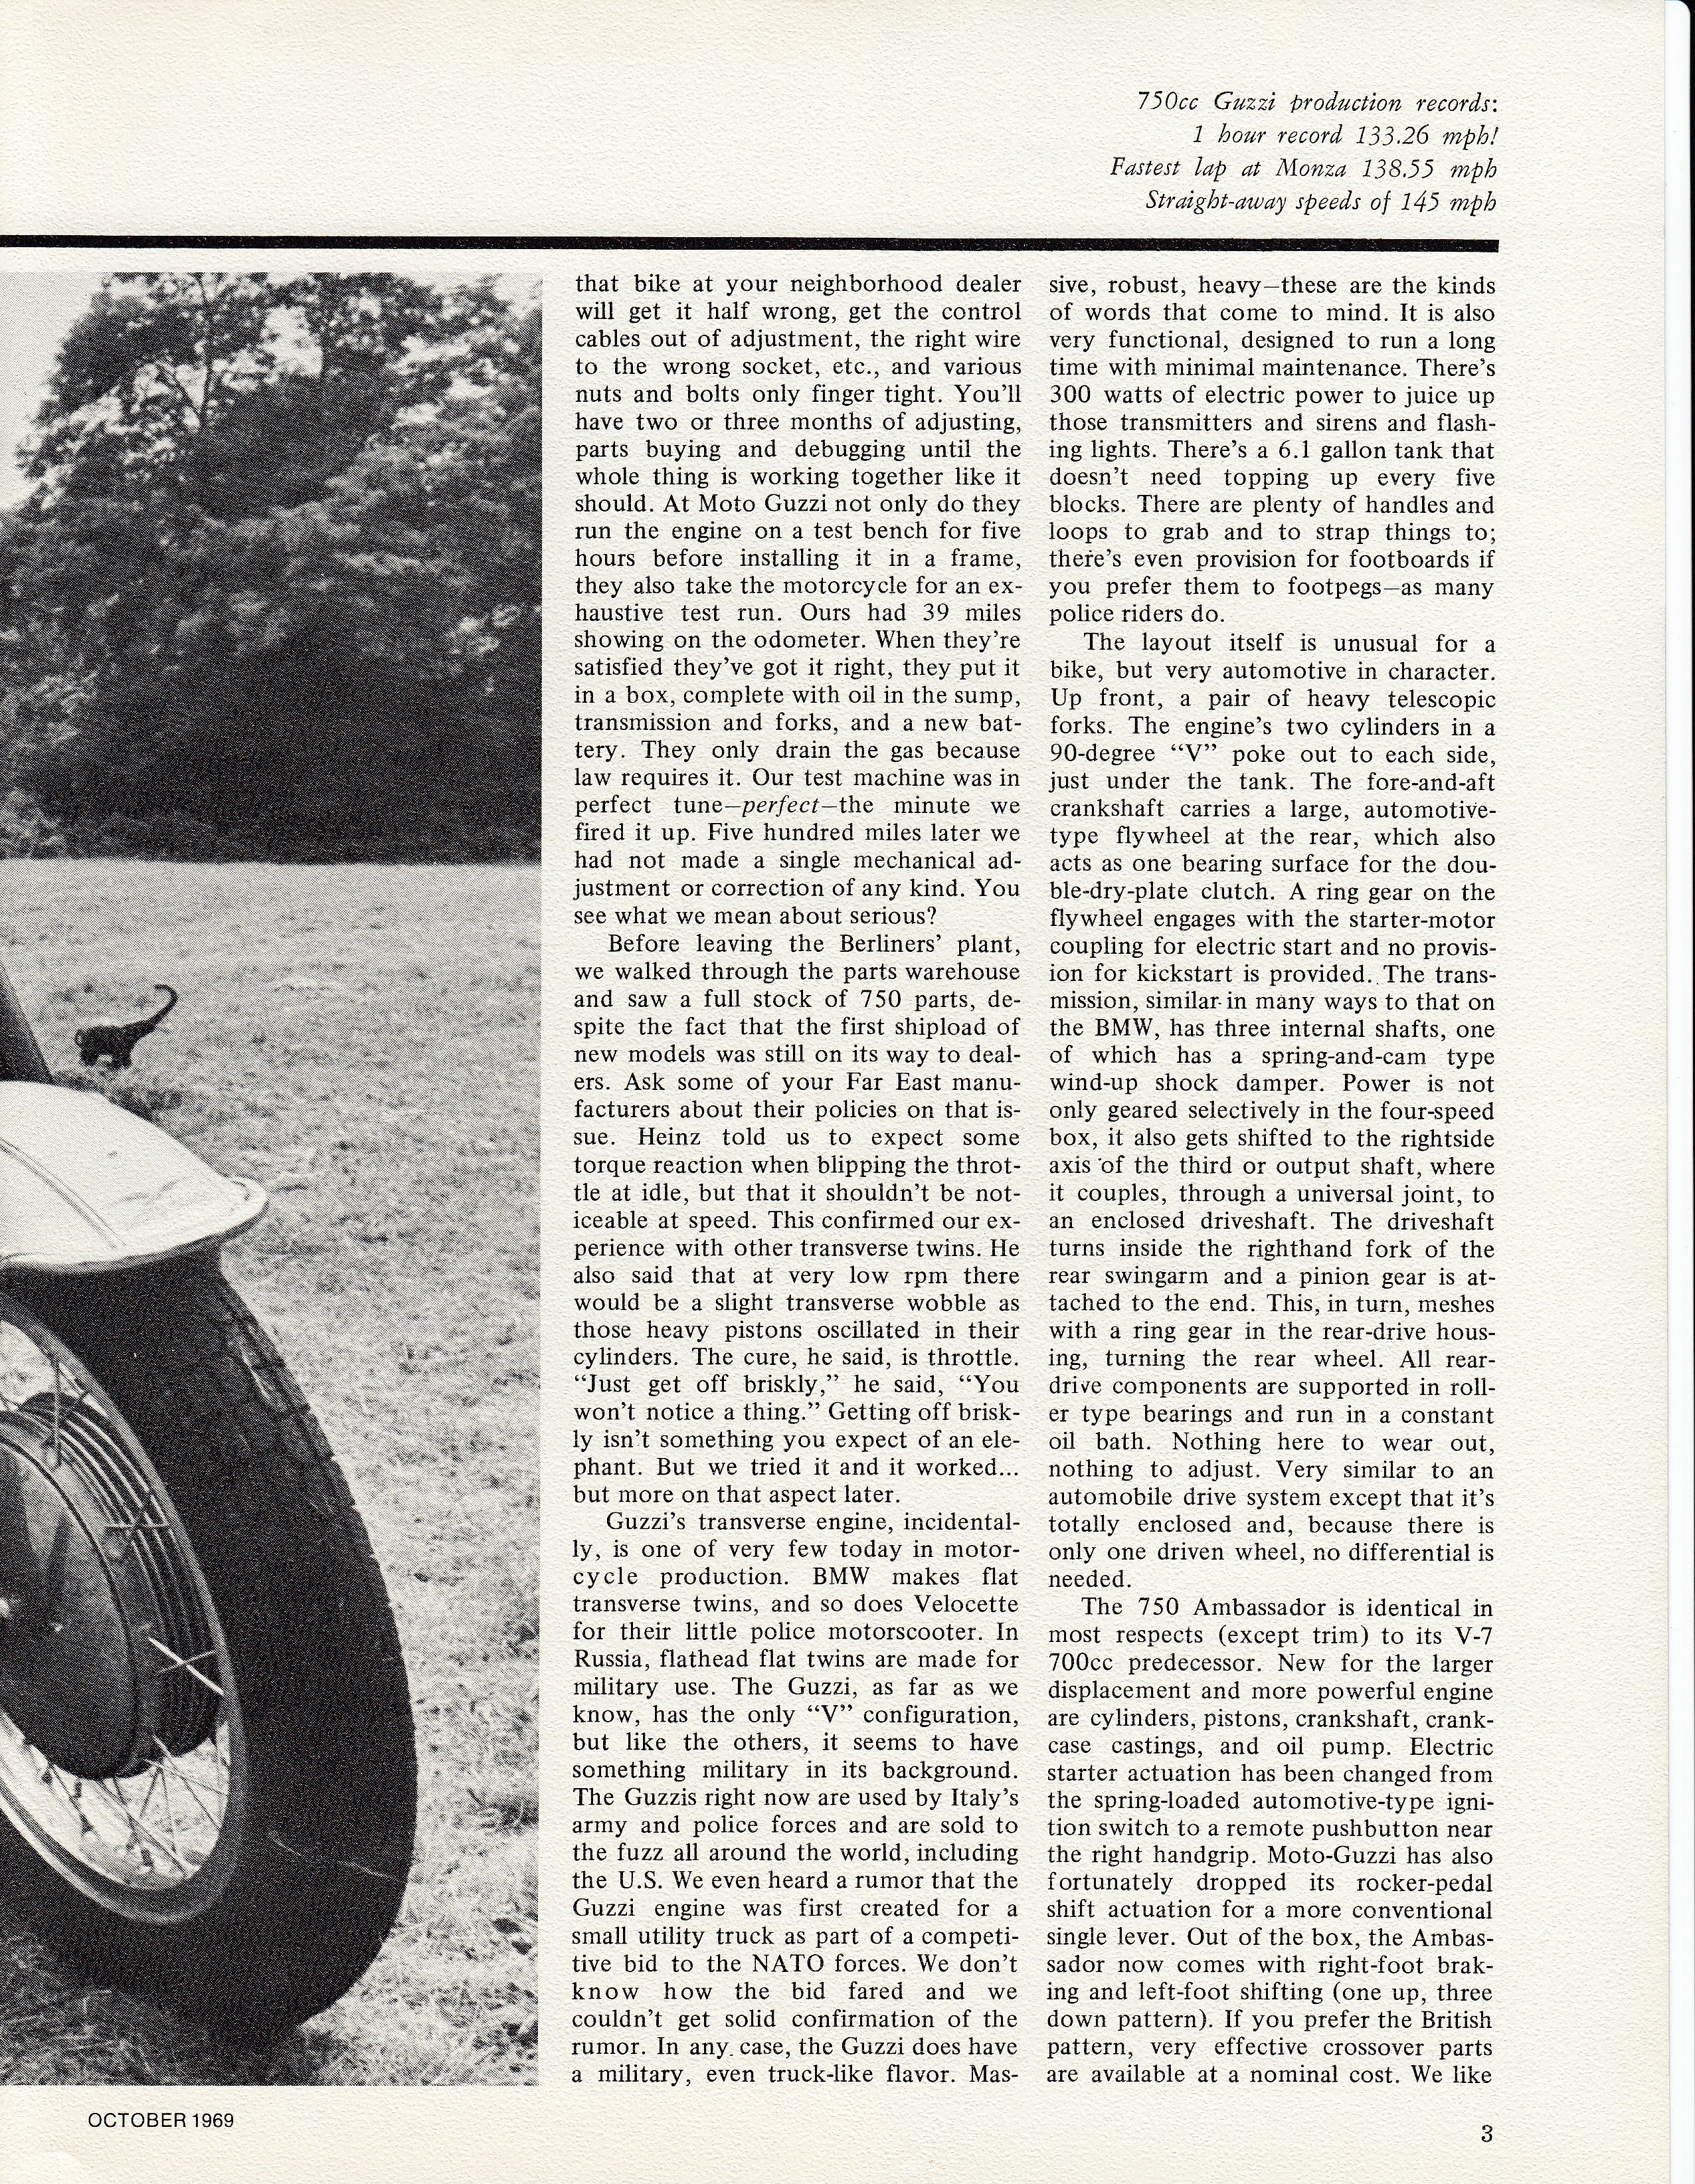 Moto Guzzi Ambassador factory brochure of magazine reviews, Page 3 of 16.